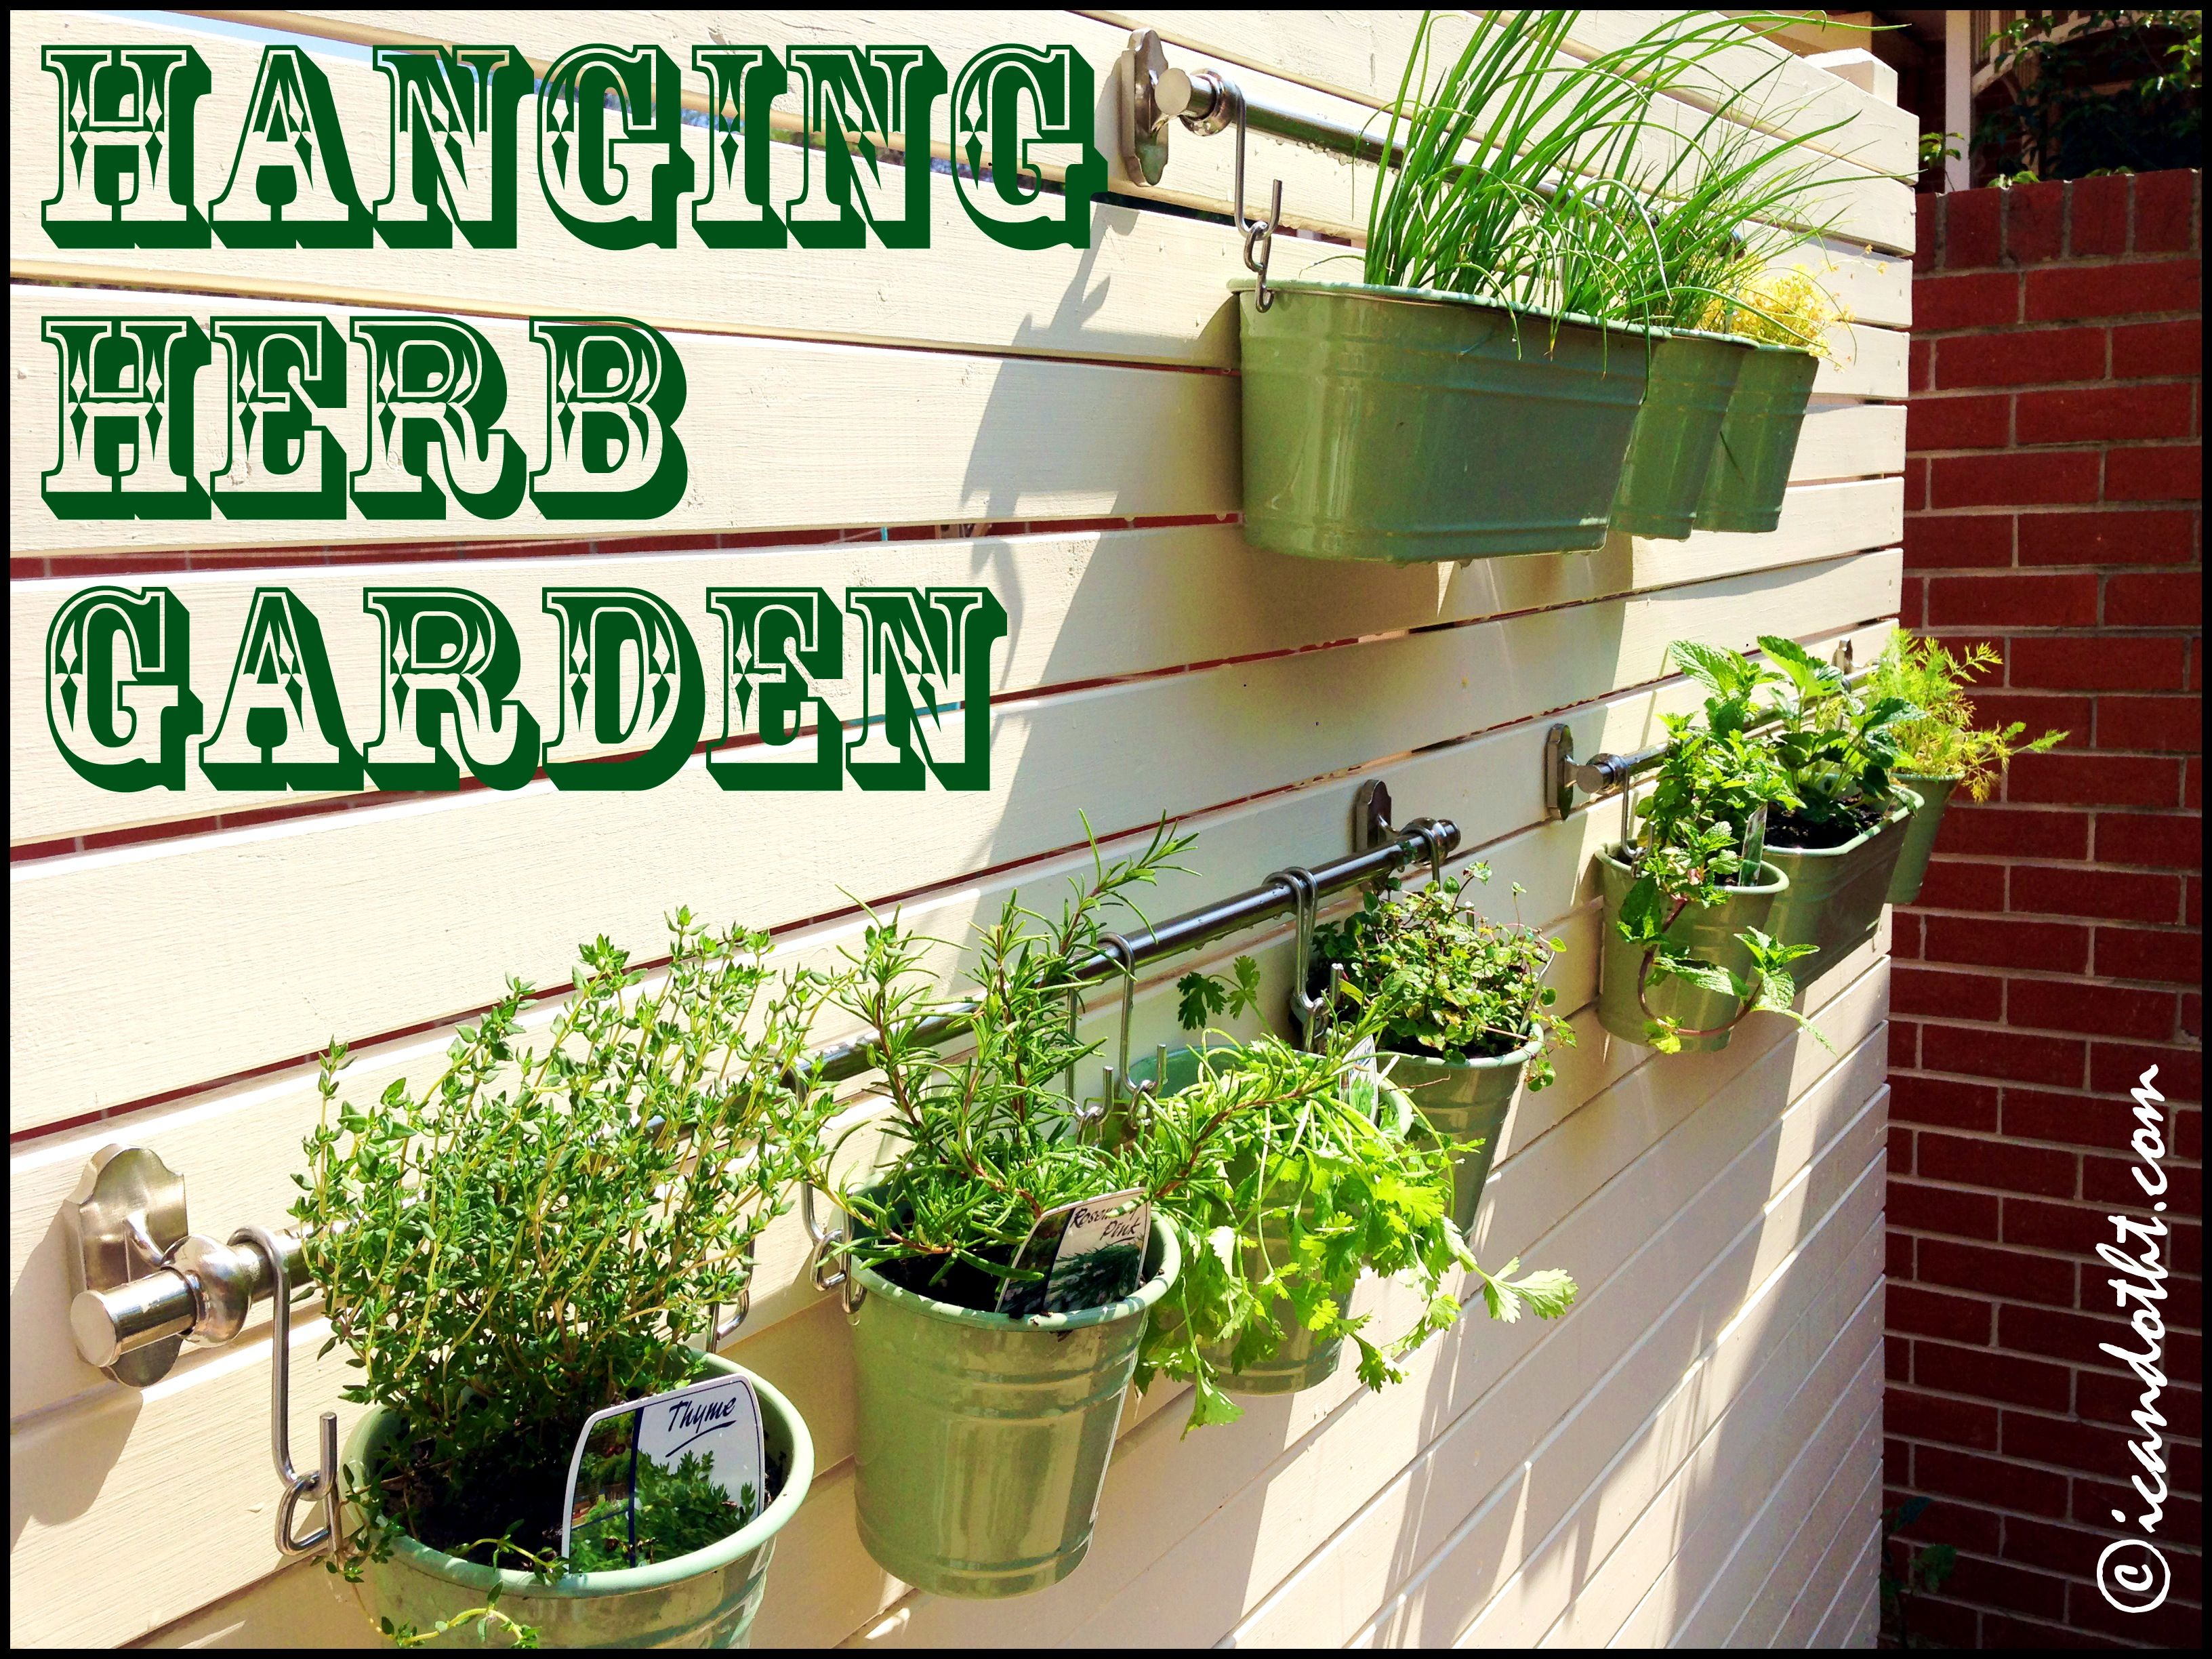 picturesquehangingherbgardenburlapherbgardenfrontdiy